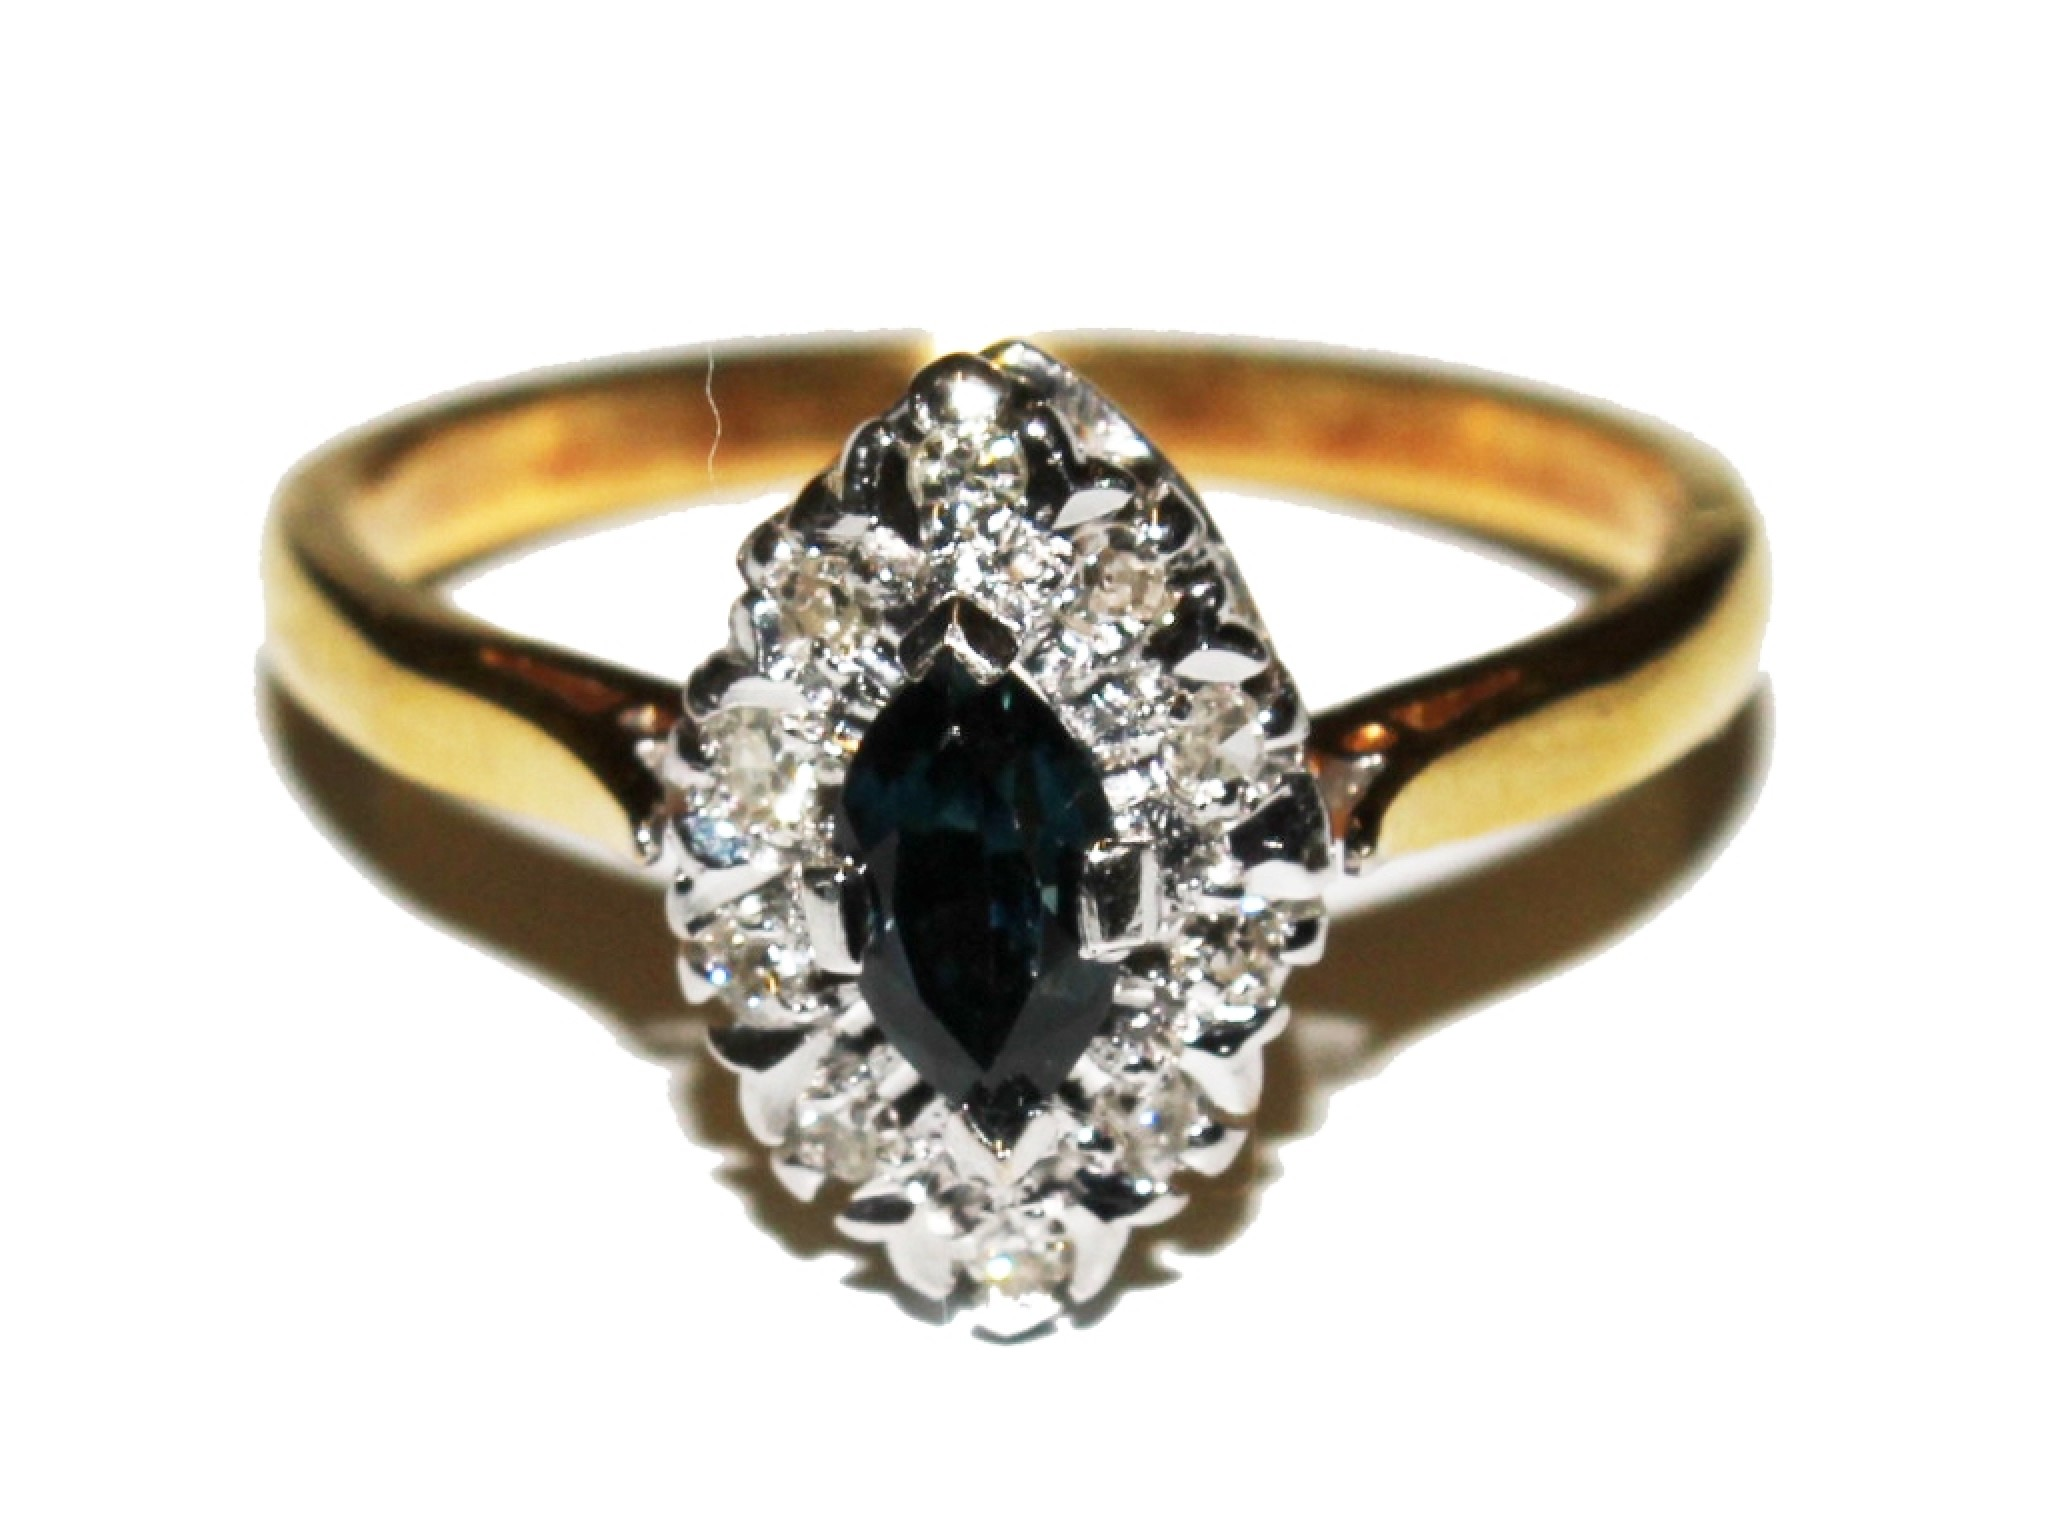 A diamond and sapphire oval cluster ring set in 18 carat gold